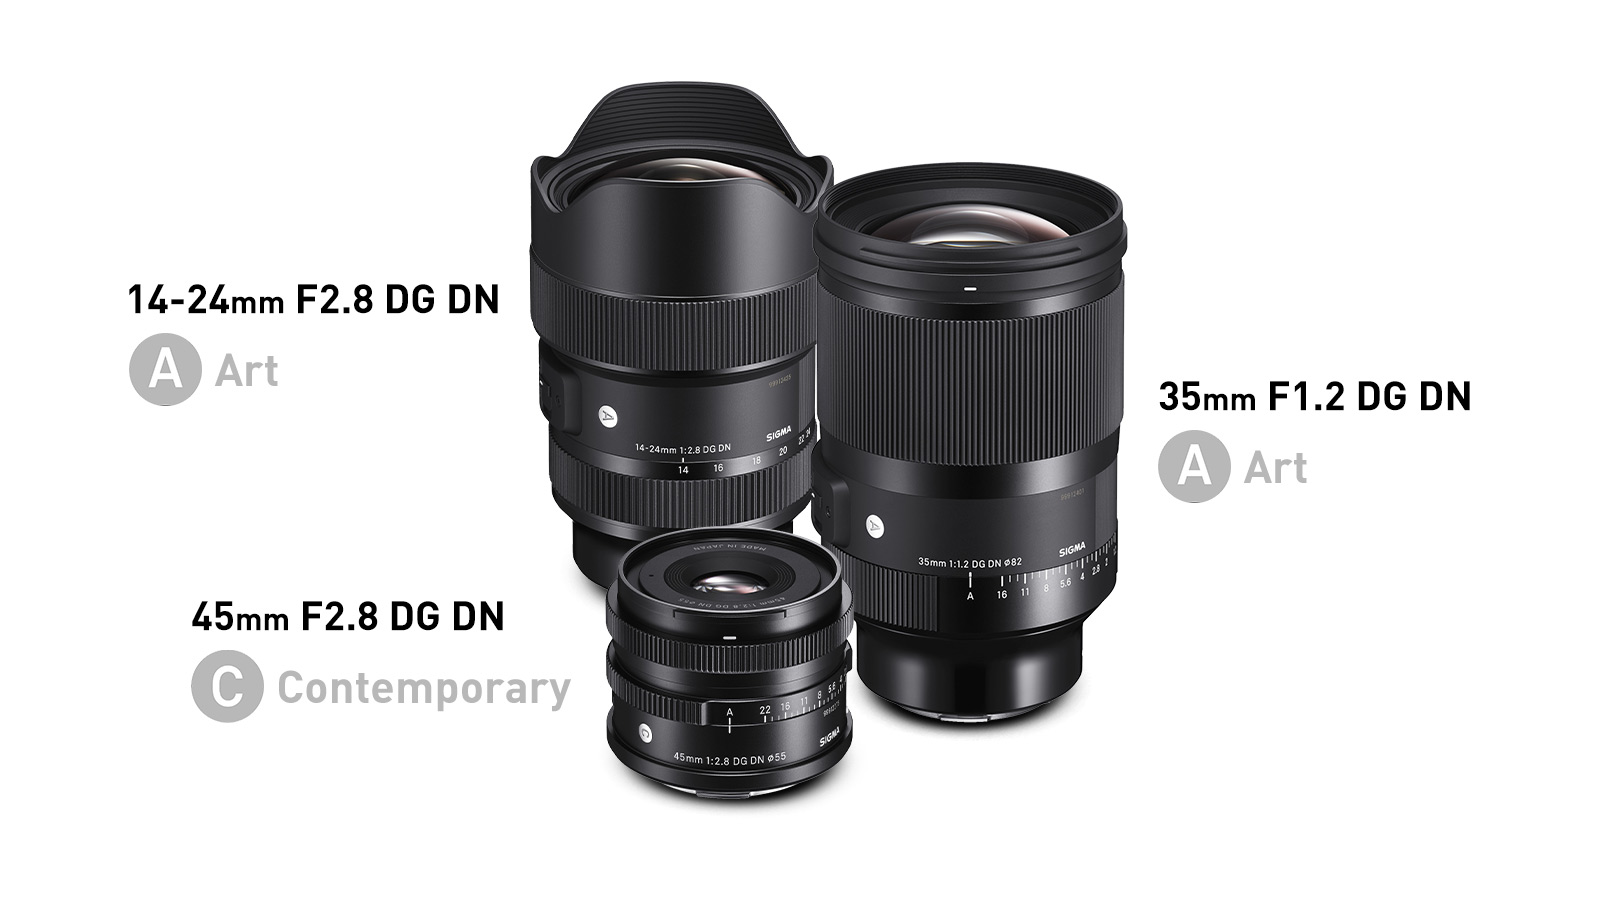 Sigma Announces 35mm F1.2, 14-24mm F2.8, and 45mm F2.8 for Full-Frame Mirrorless